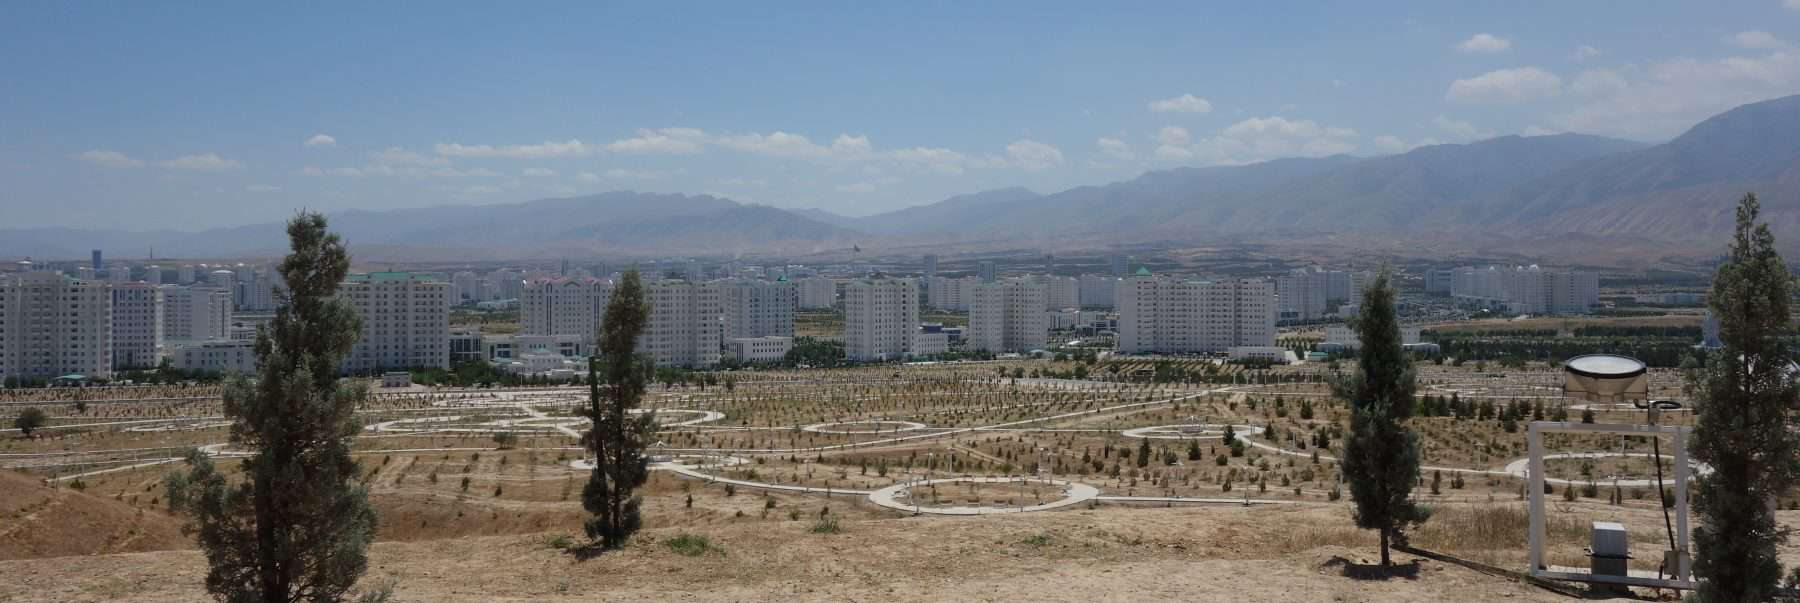 View of Ashgabat